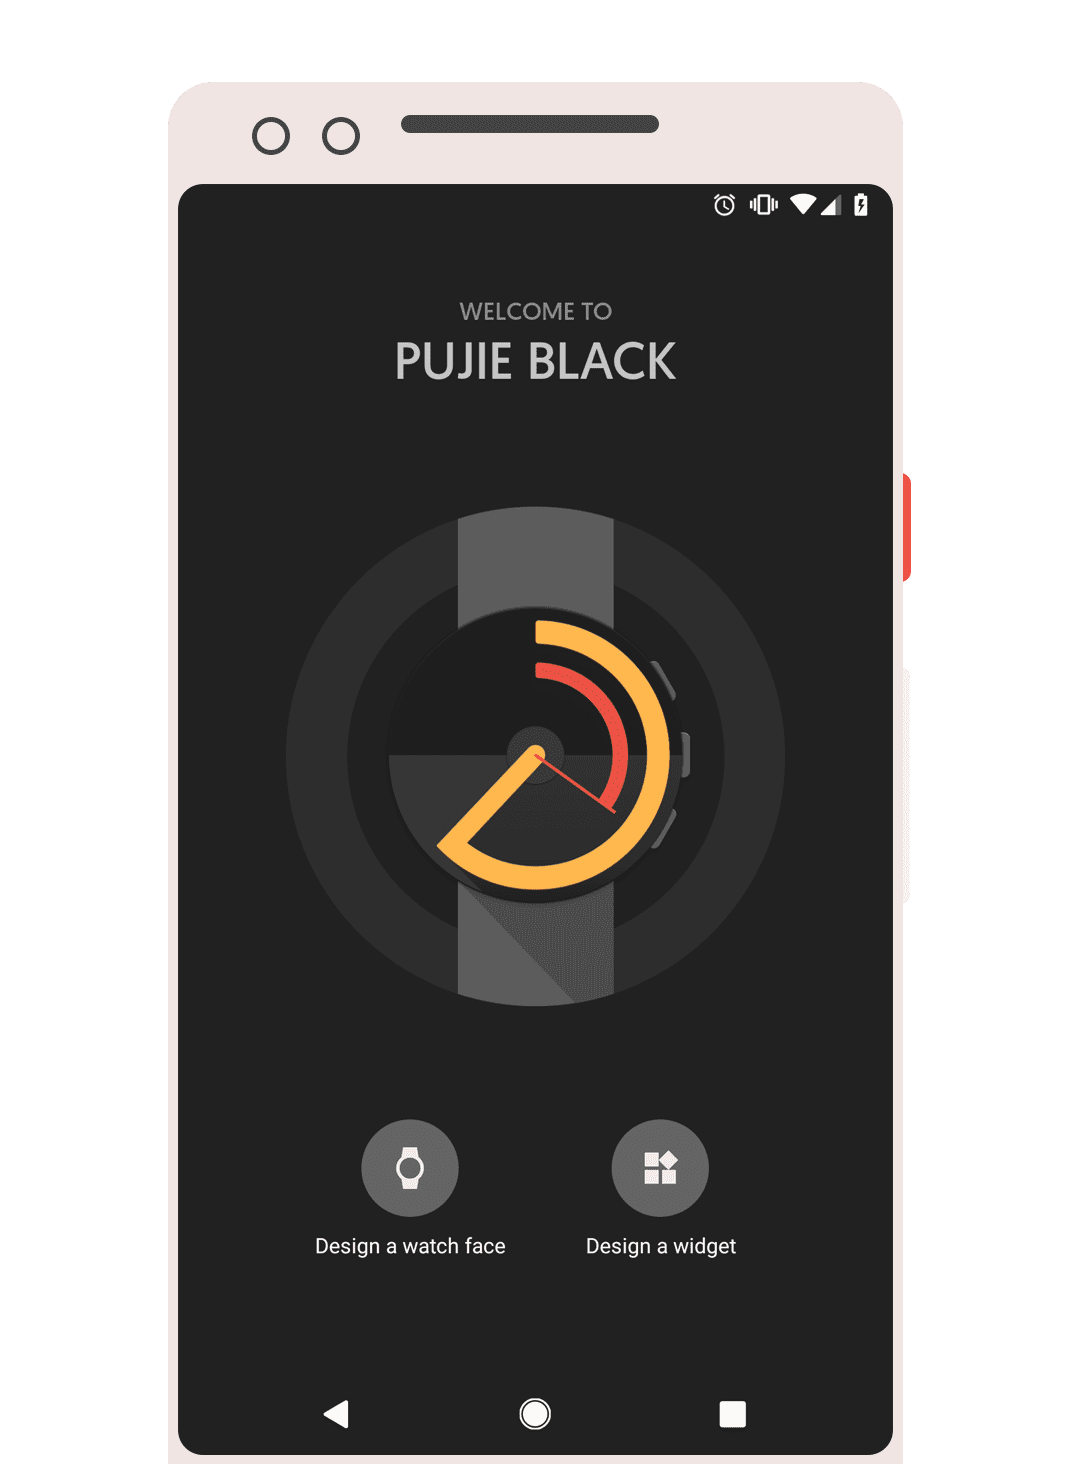 Pujie Black intro screen